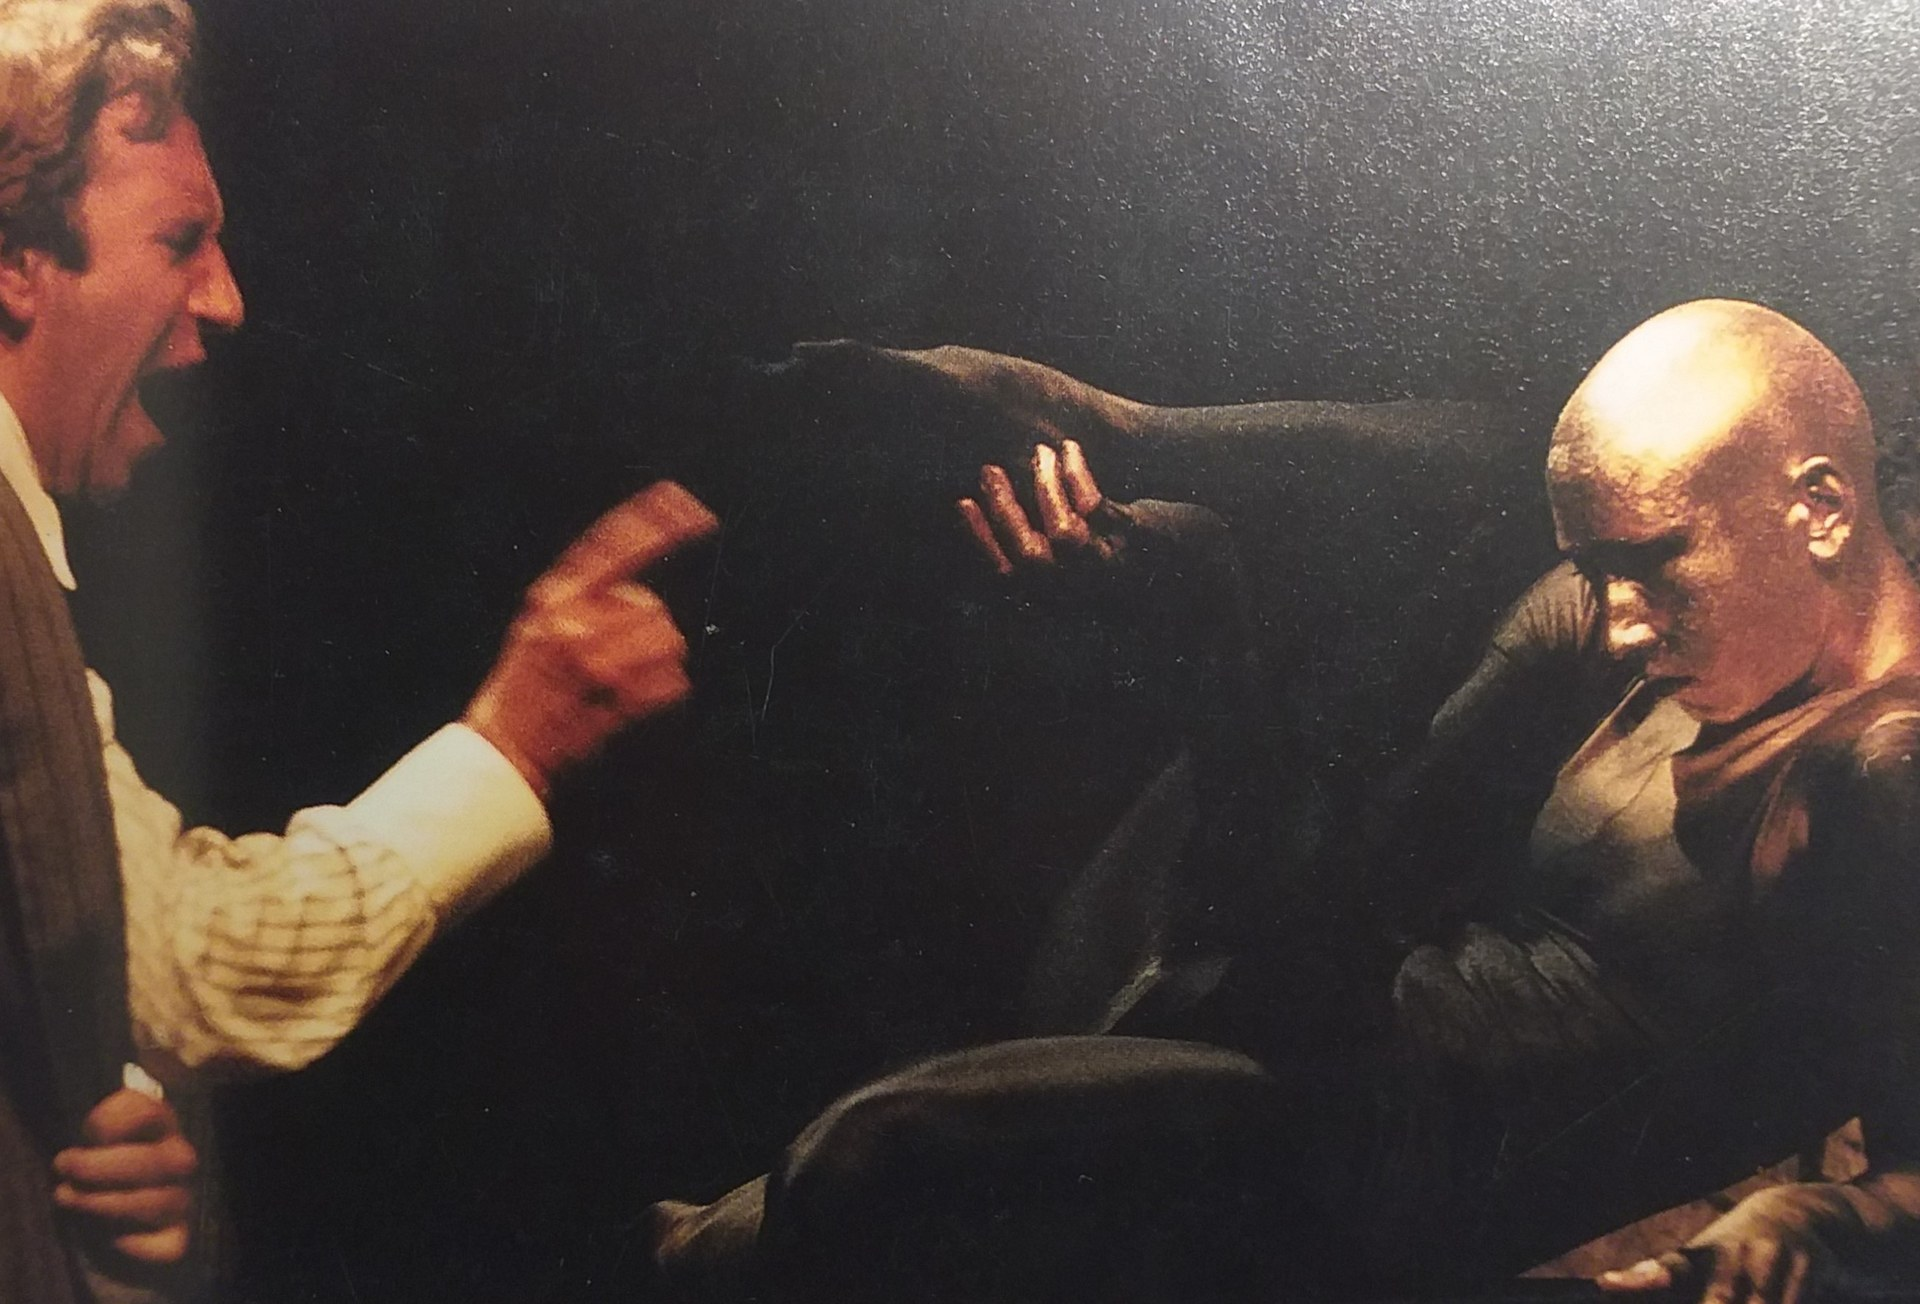 La Piovra by Witkacy translated and directed by Giovanni Pampiglione, Spoleto, 1982.